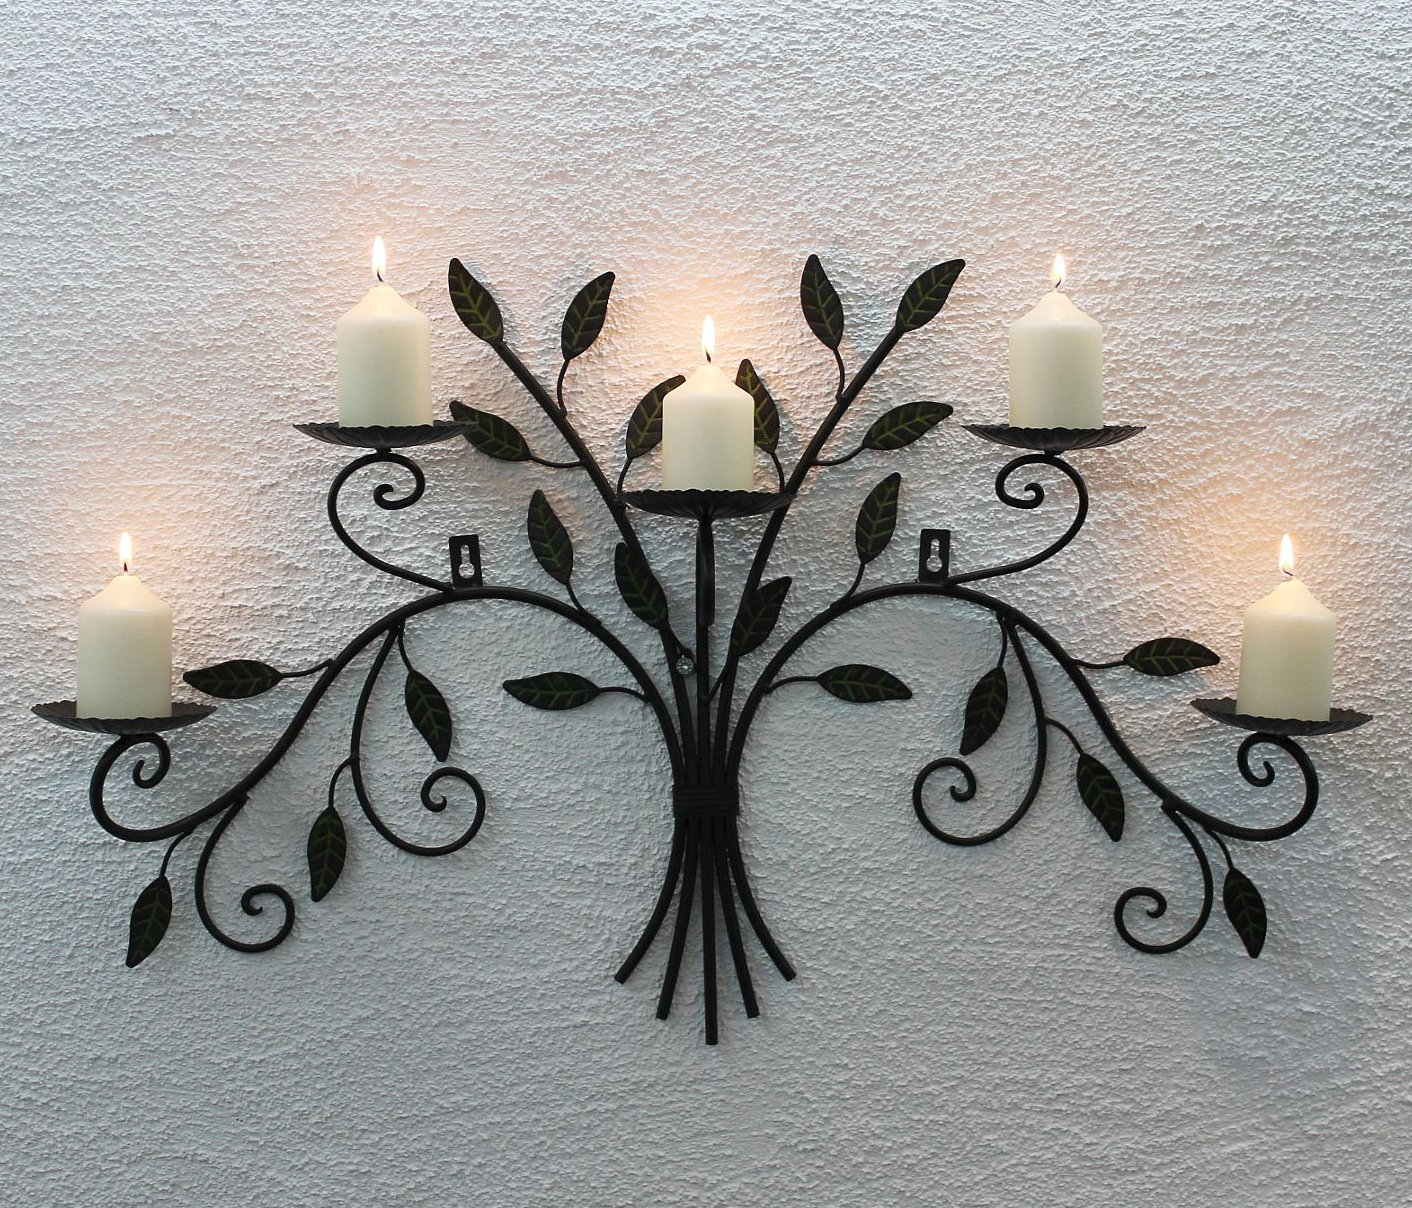 12119 Wall-Mounted Candle Holder 70 cm Wrought Iron DanDiBo